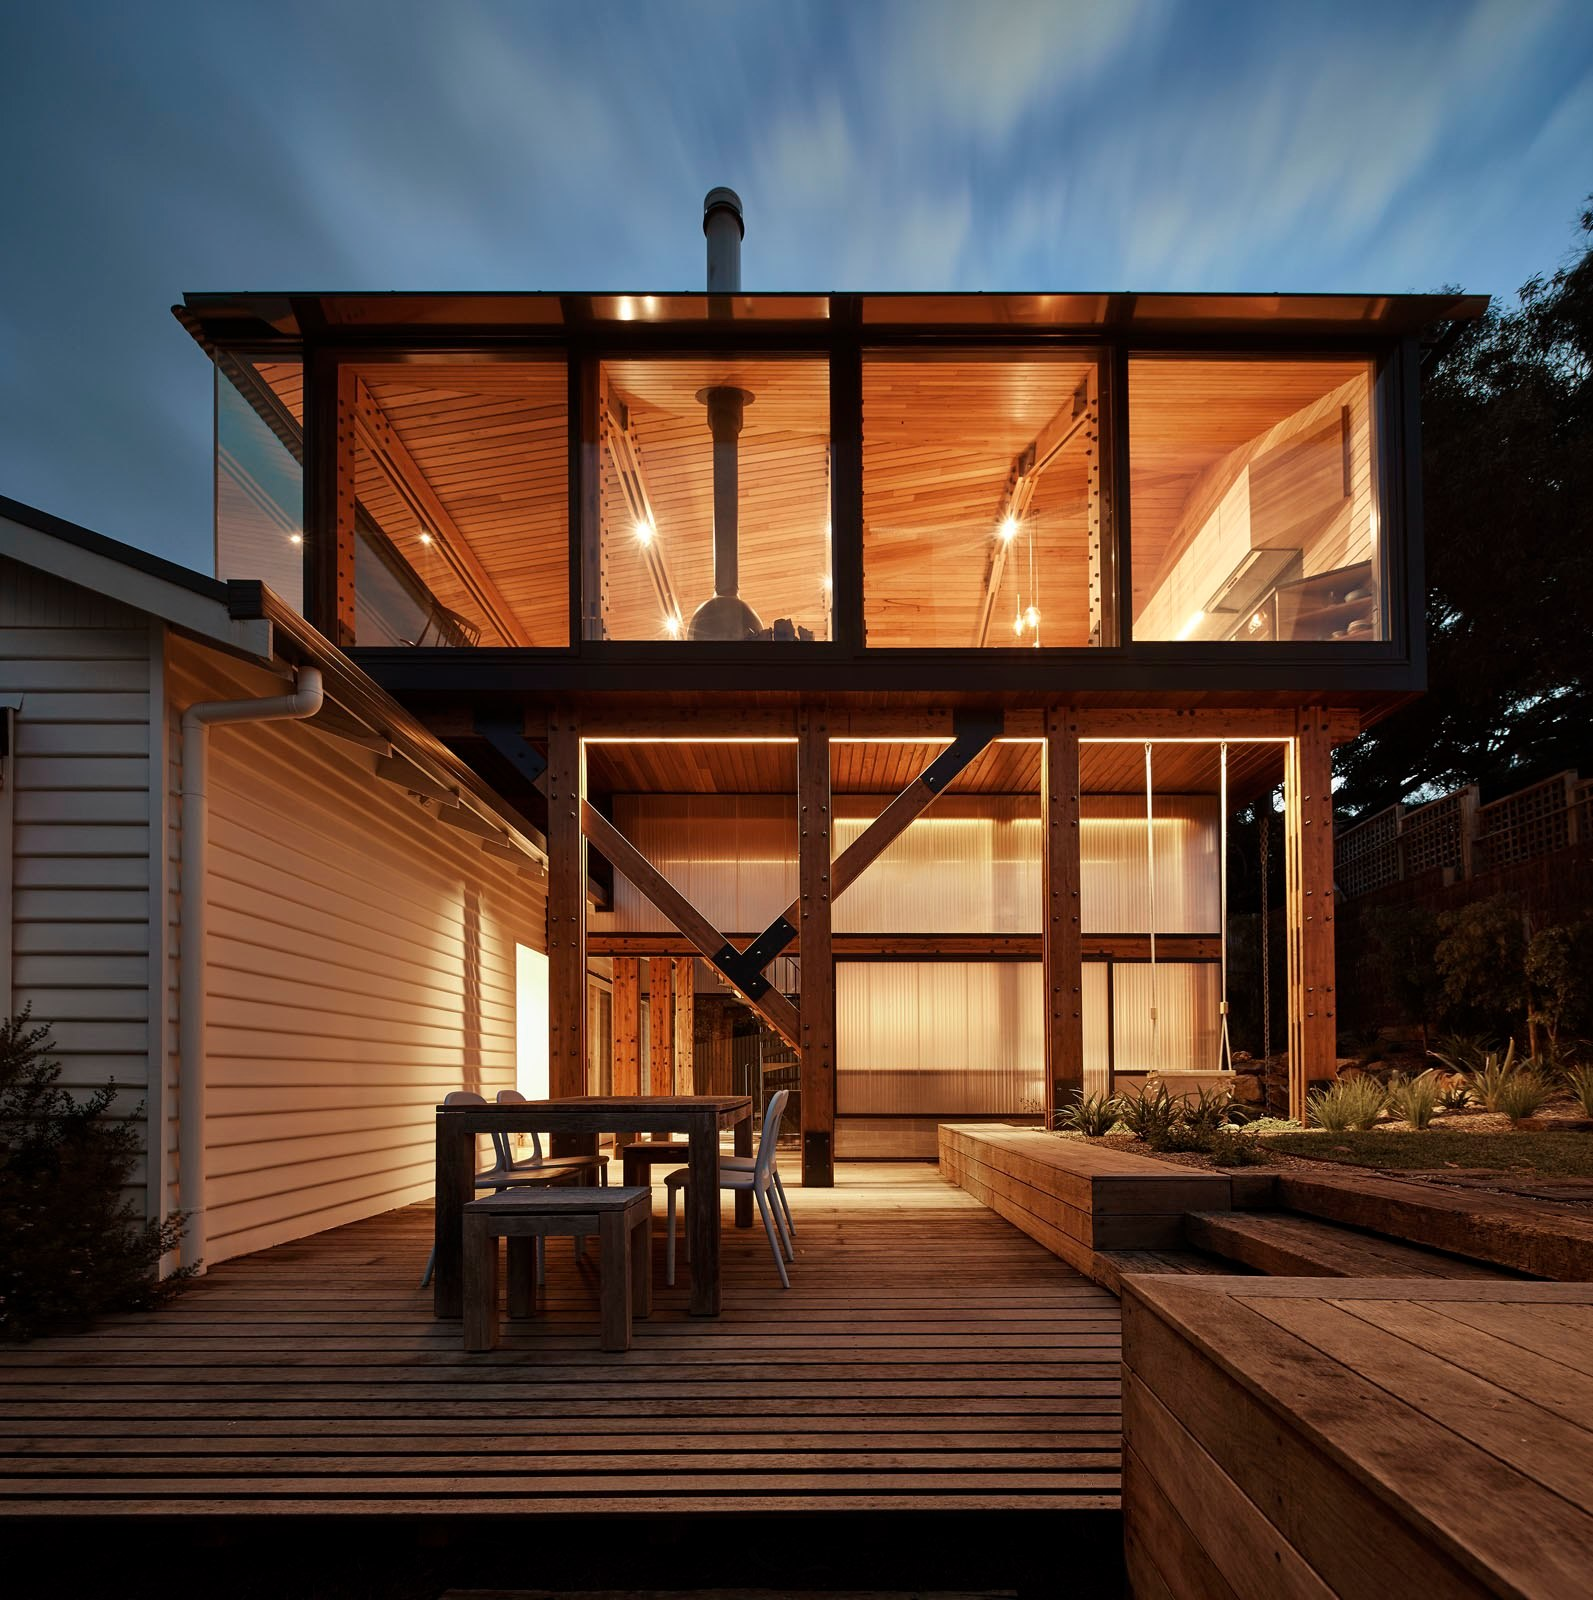 1_Dorman House_Austin Maynard Architects_Inspirationist